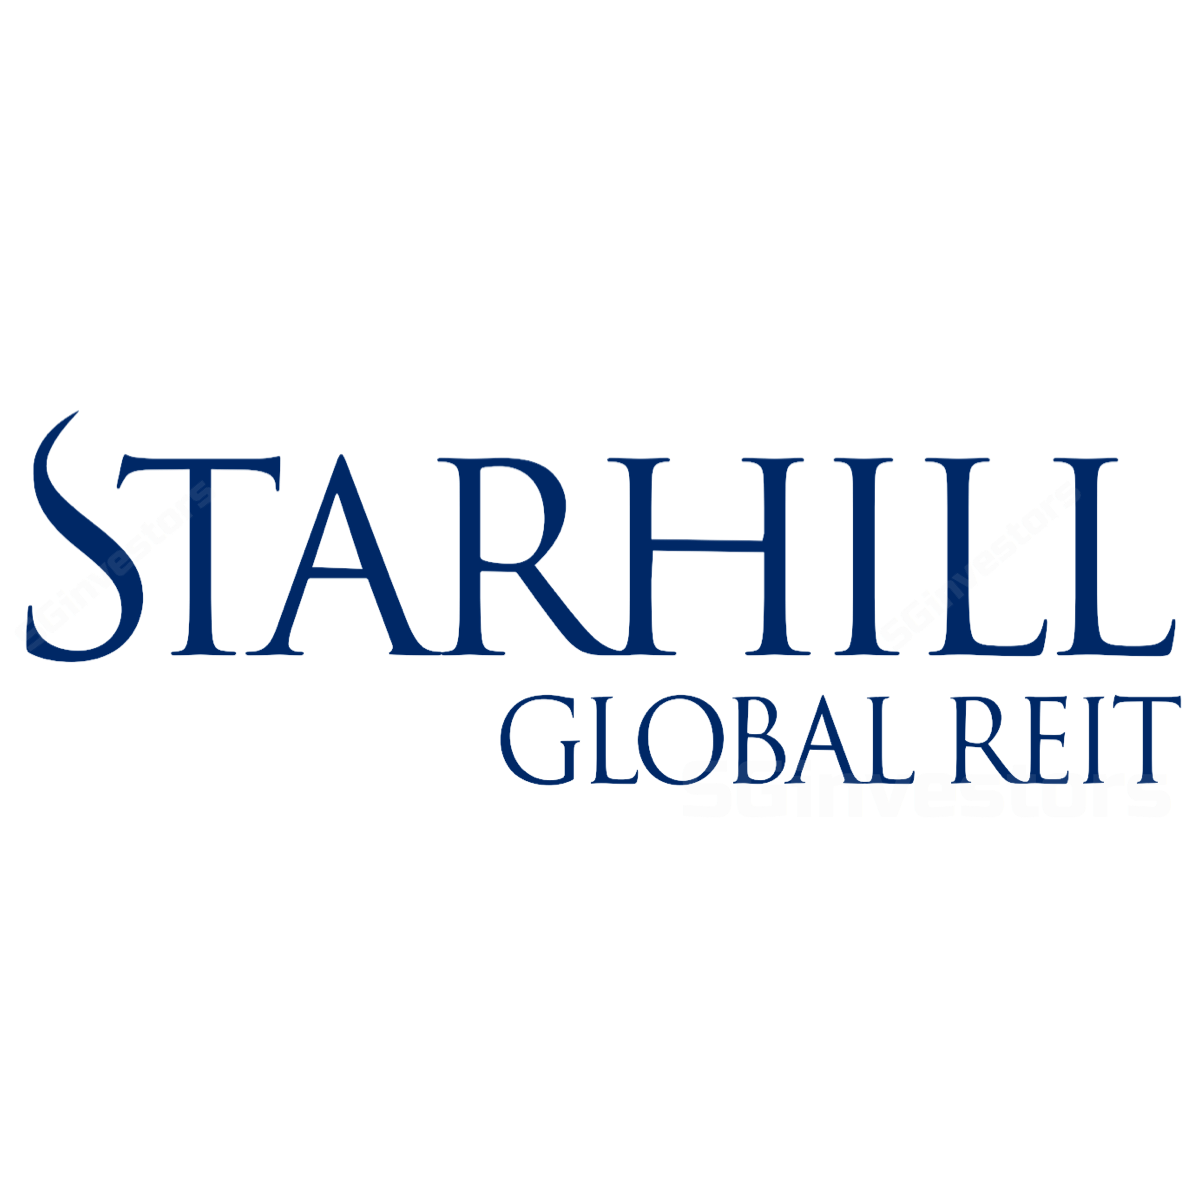 Starhill Global REIT - OCBC Investment 2017-05-17: Divestment Of Asset In Tokyo, Japan